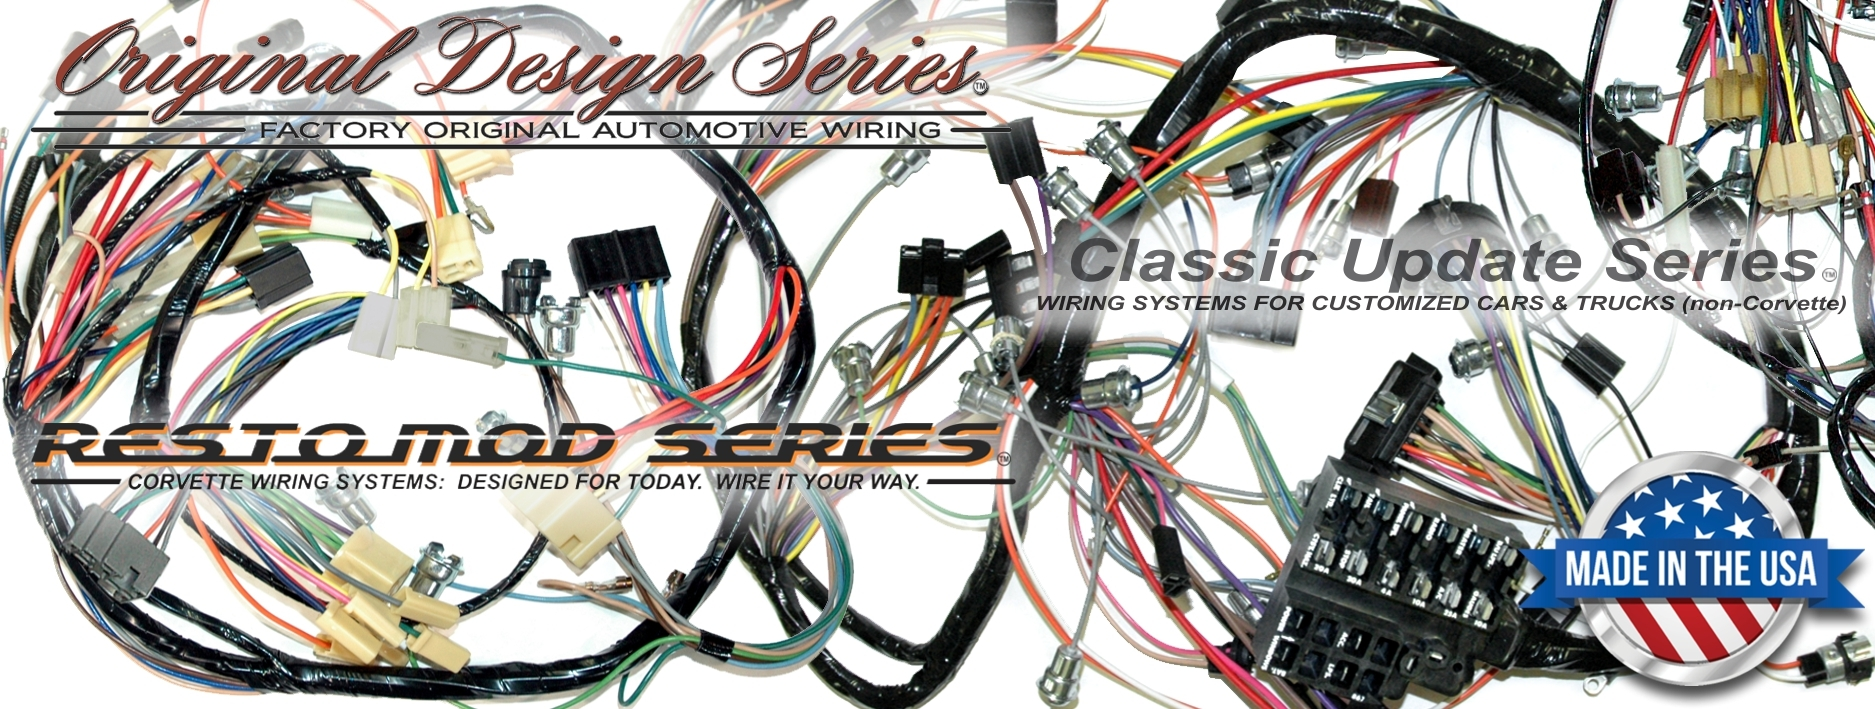 exact oem reproduction wiring harnesses and restomod wiring wire harness assembly table wiring harness competences dr�xlmaier